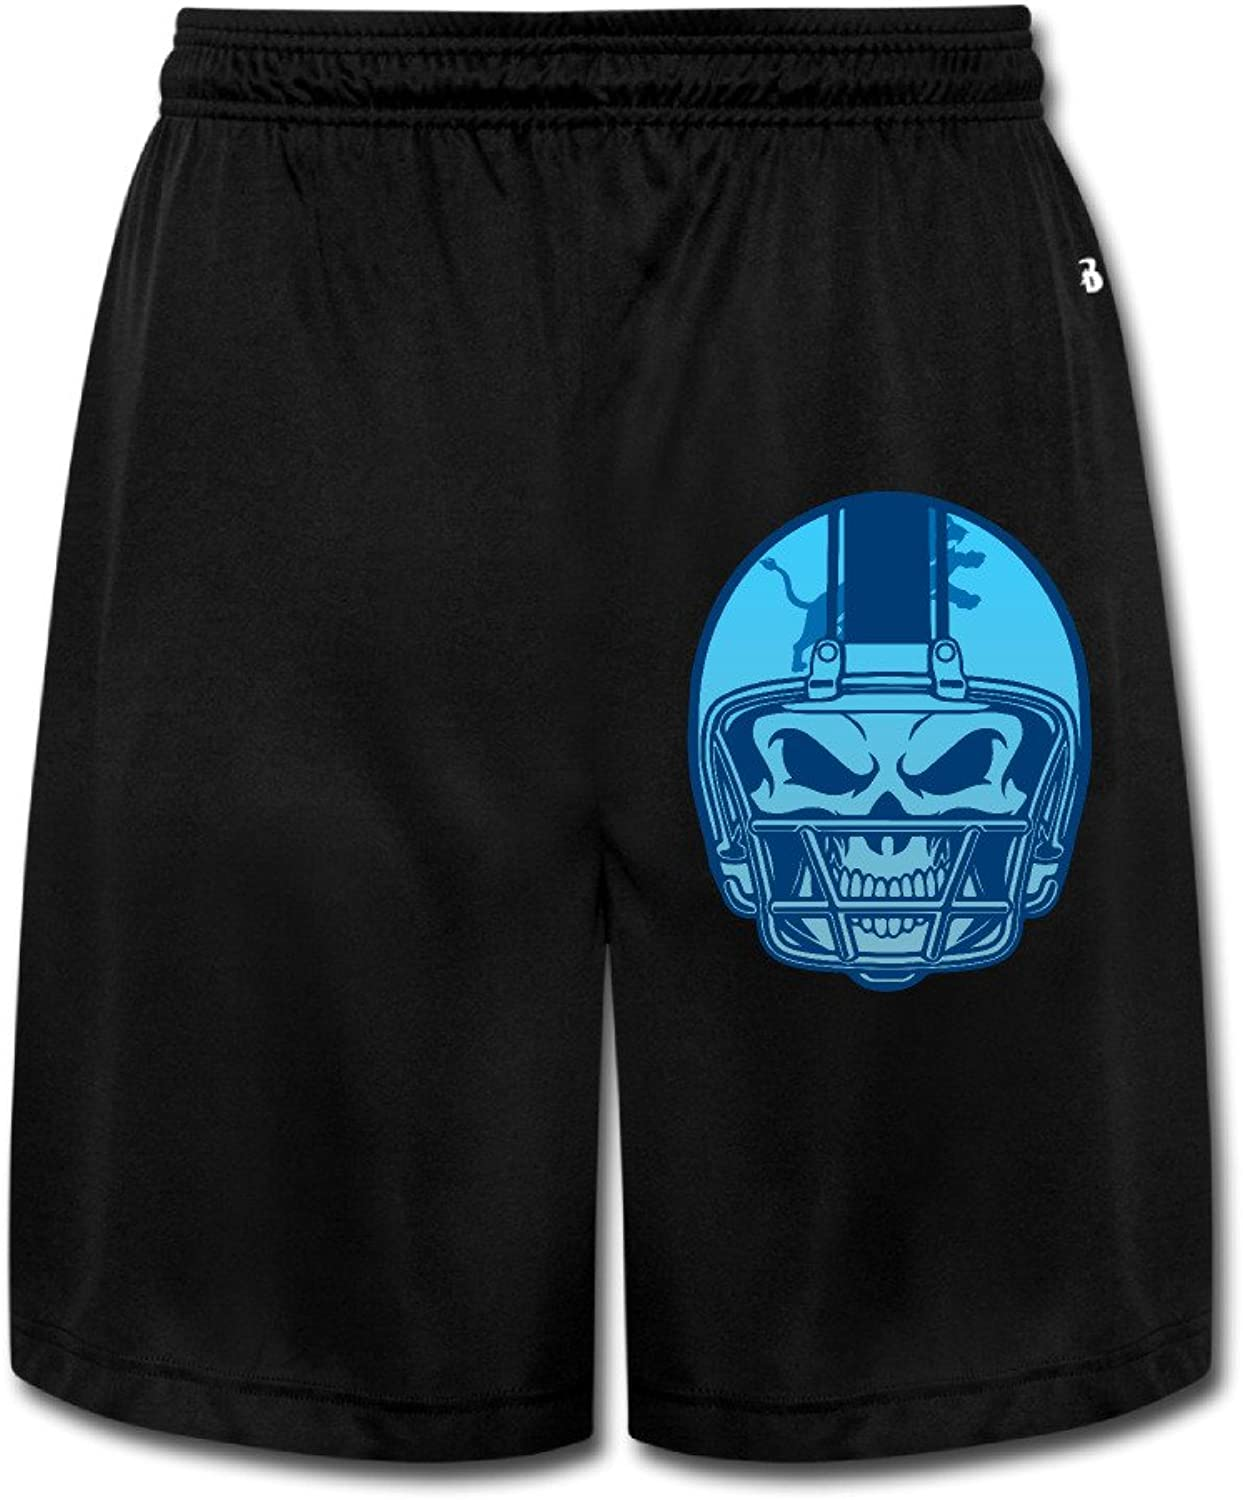 Detriot Cryins Helmet Skull Men's Shorts Sweatpants Black